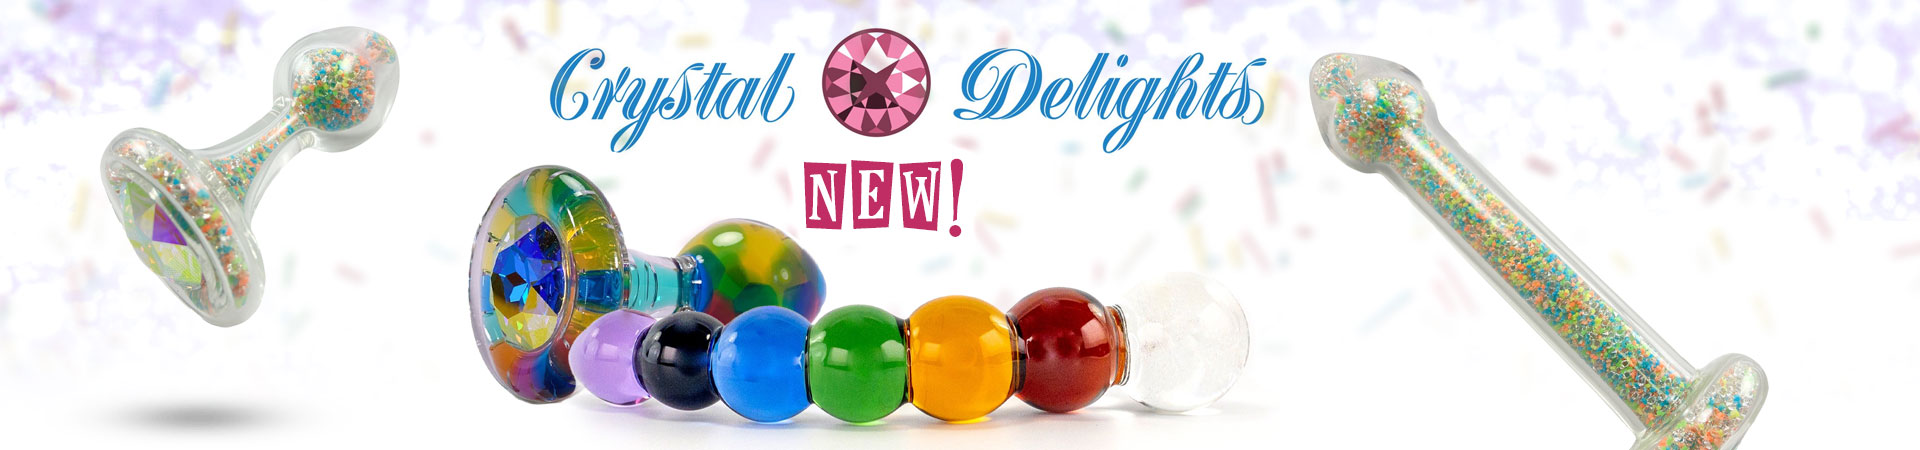 New From Crystal Delights!